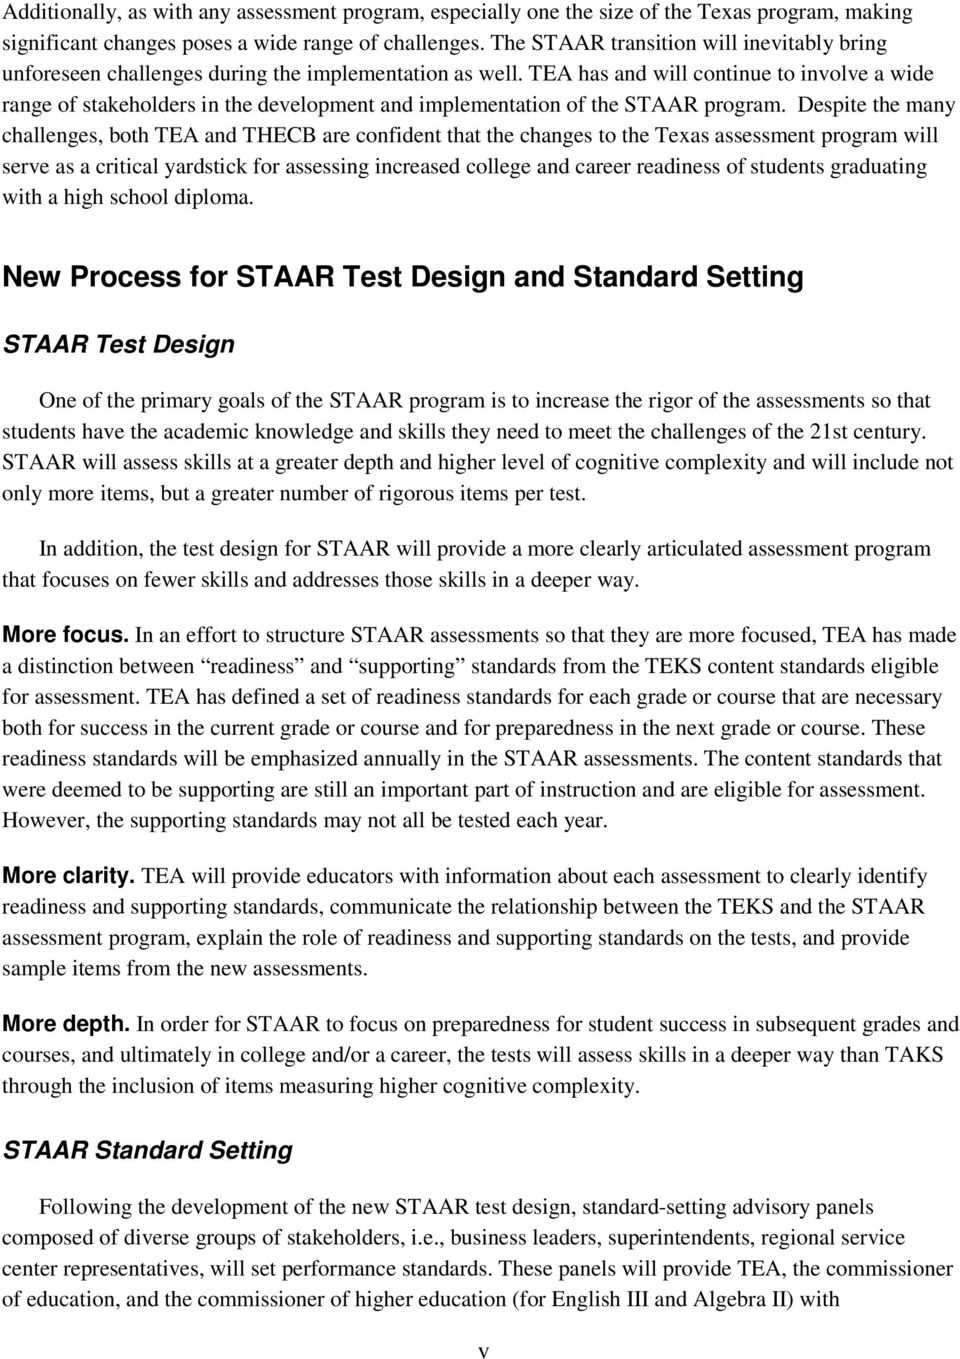 TEA has and will continue to involve a wide range of stakeholders in the development and implementation of the STAAR program.